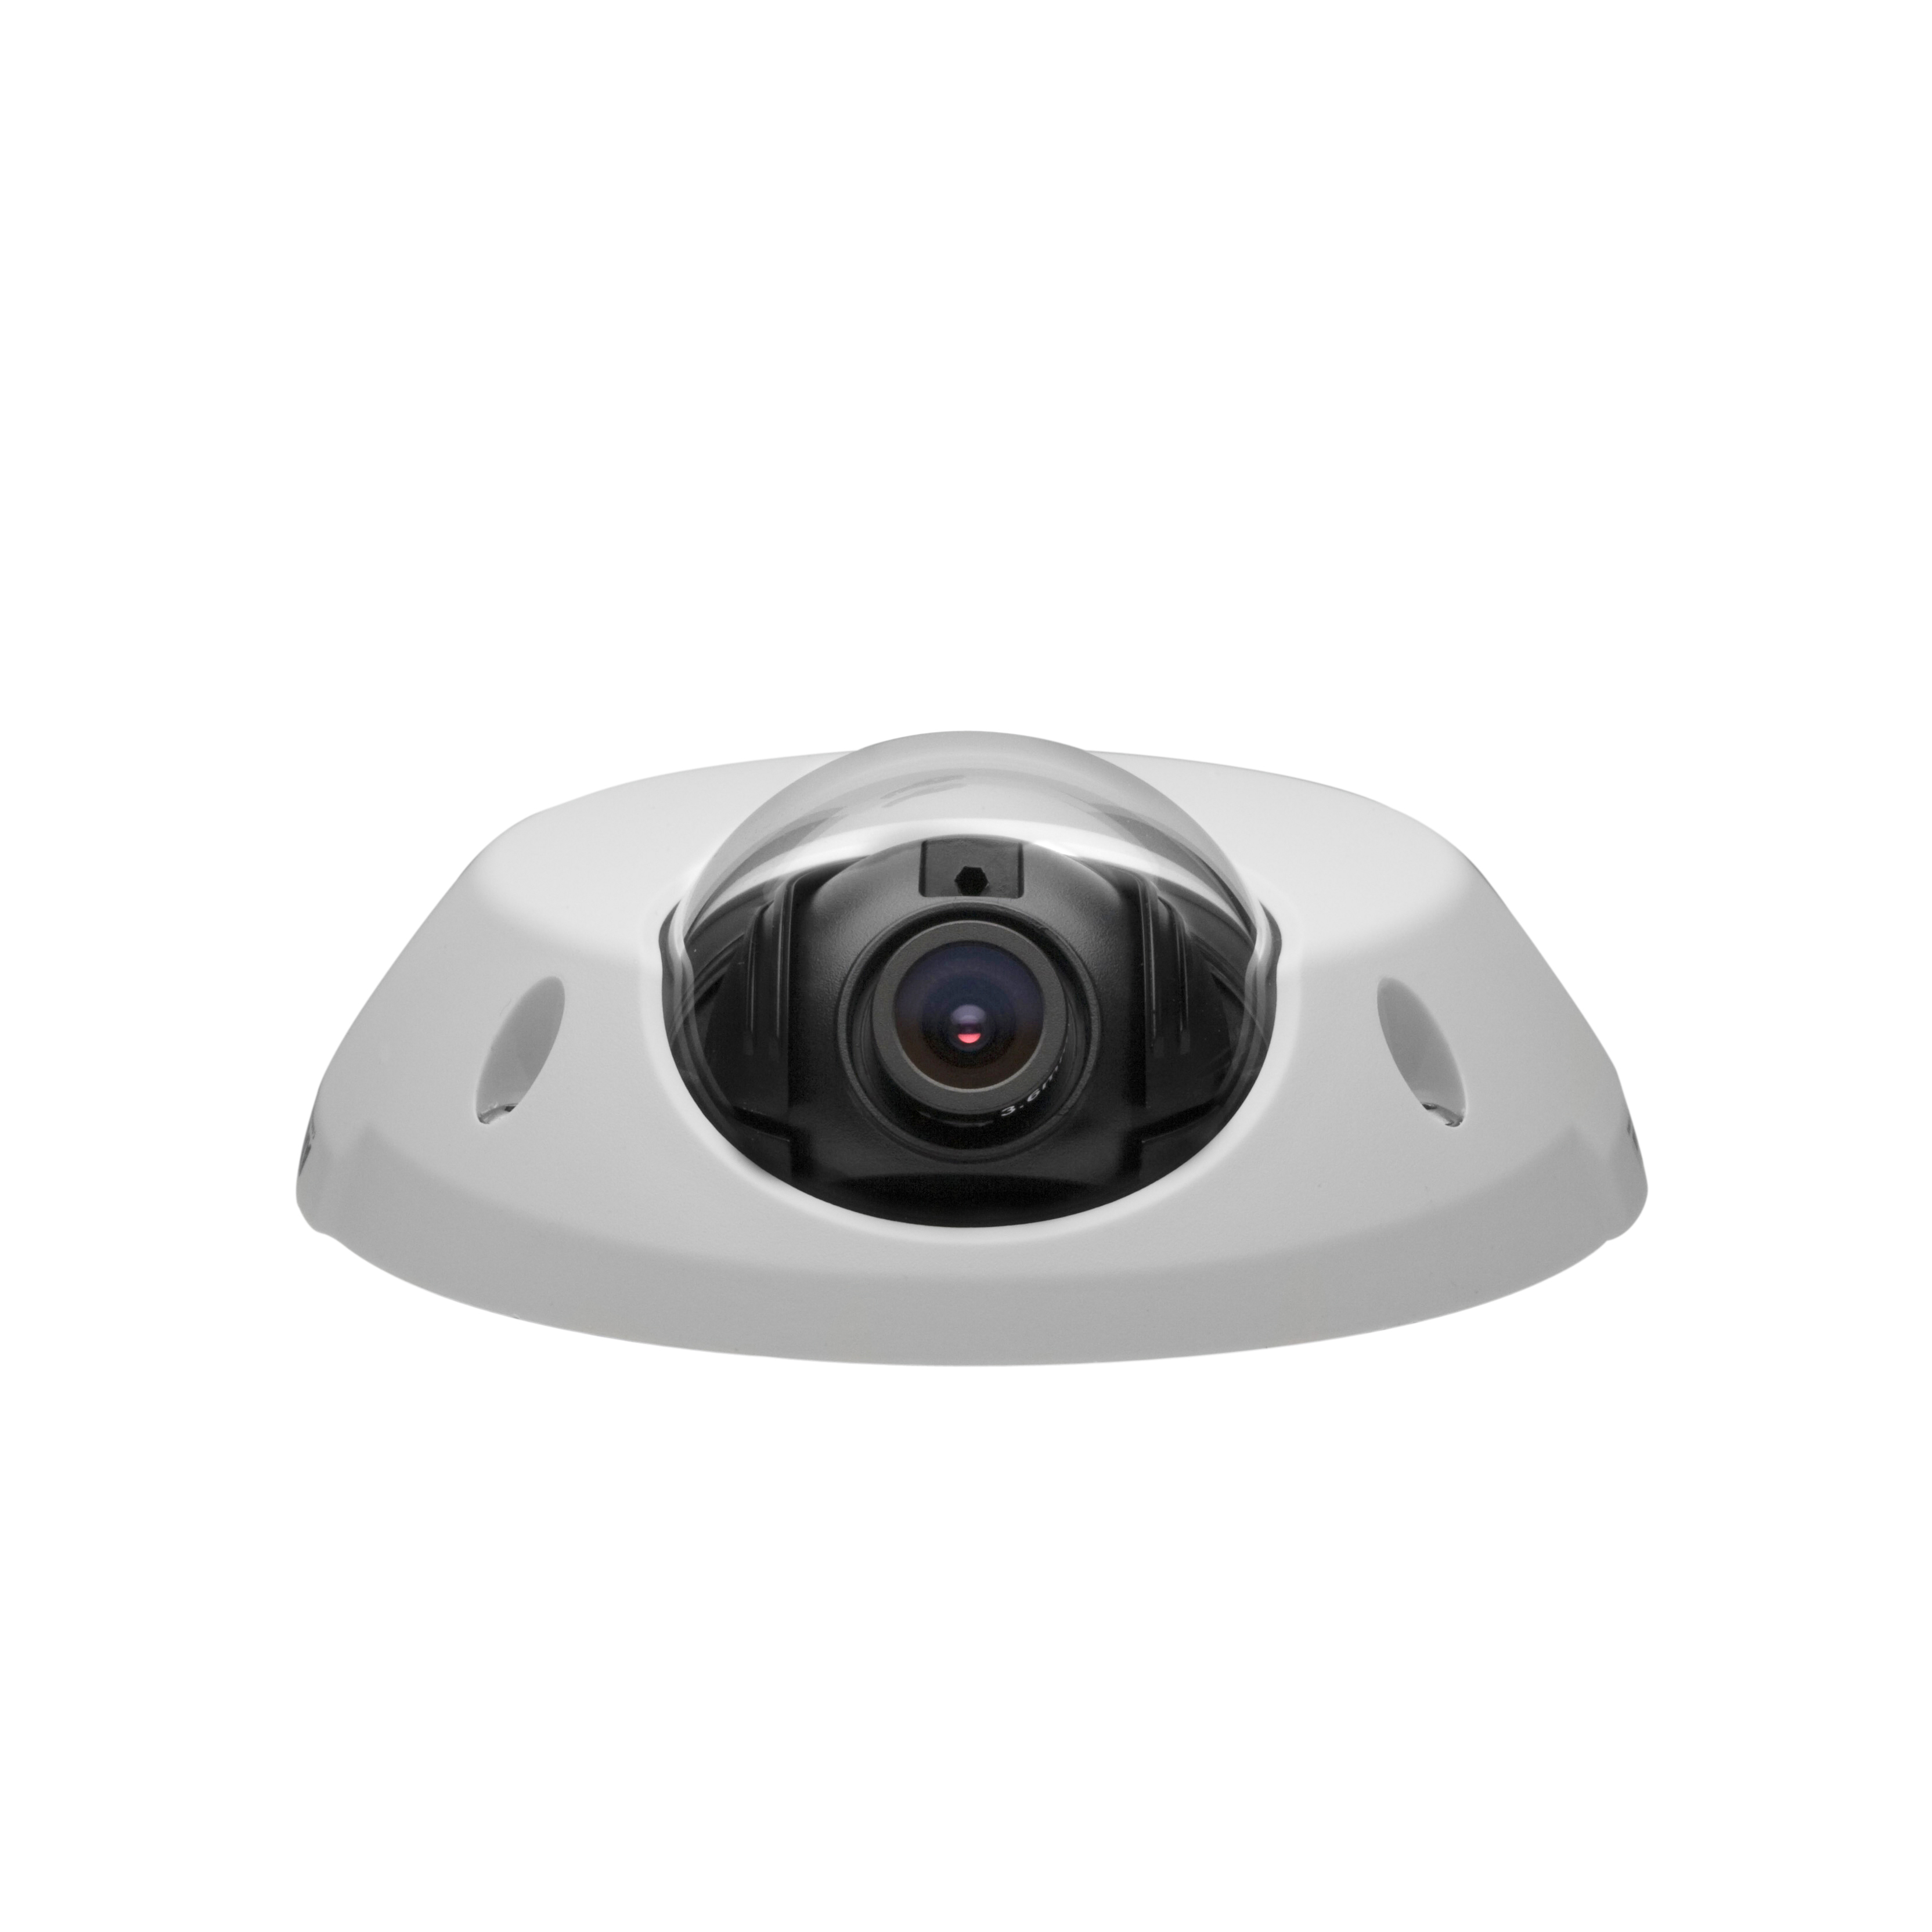 Axis 209mfd Network Camera Support Axis Communications